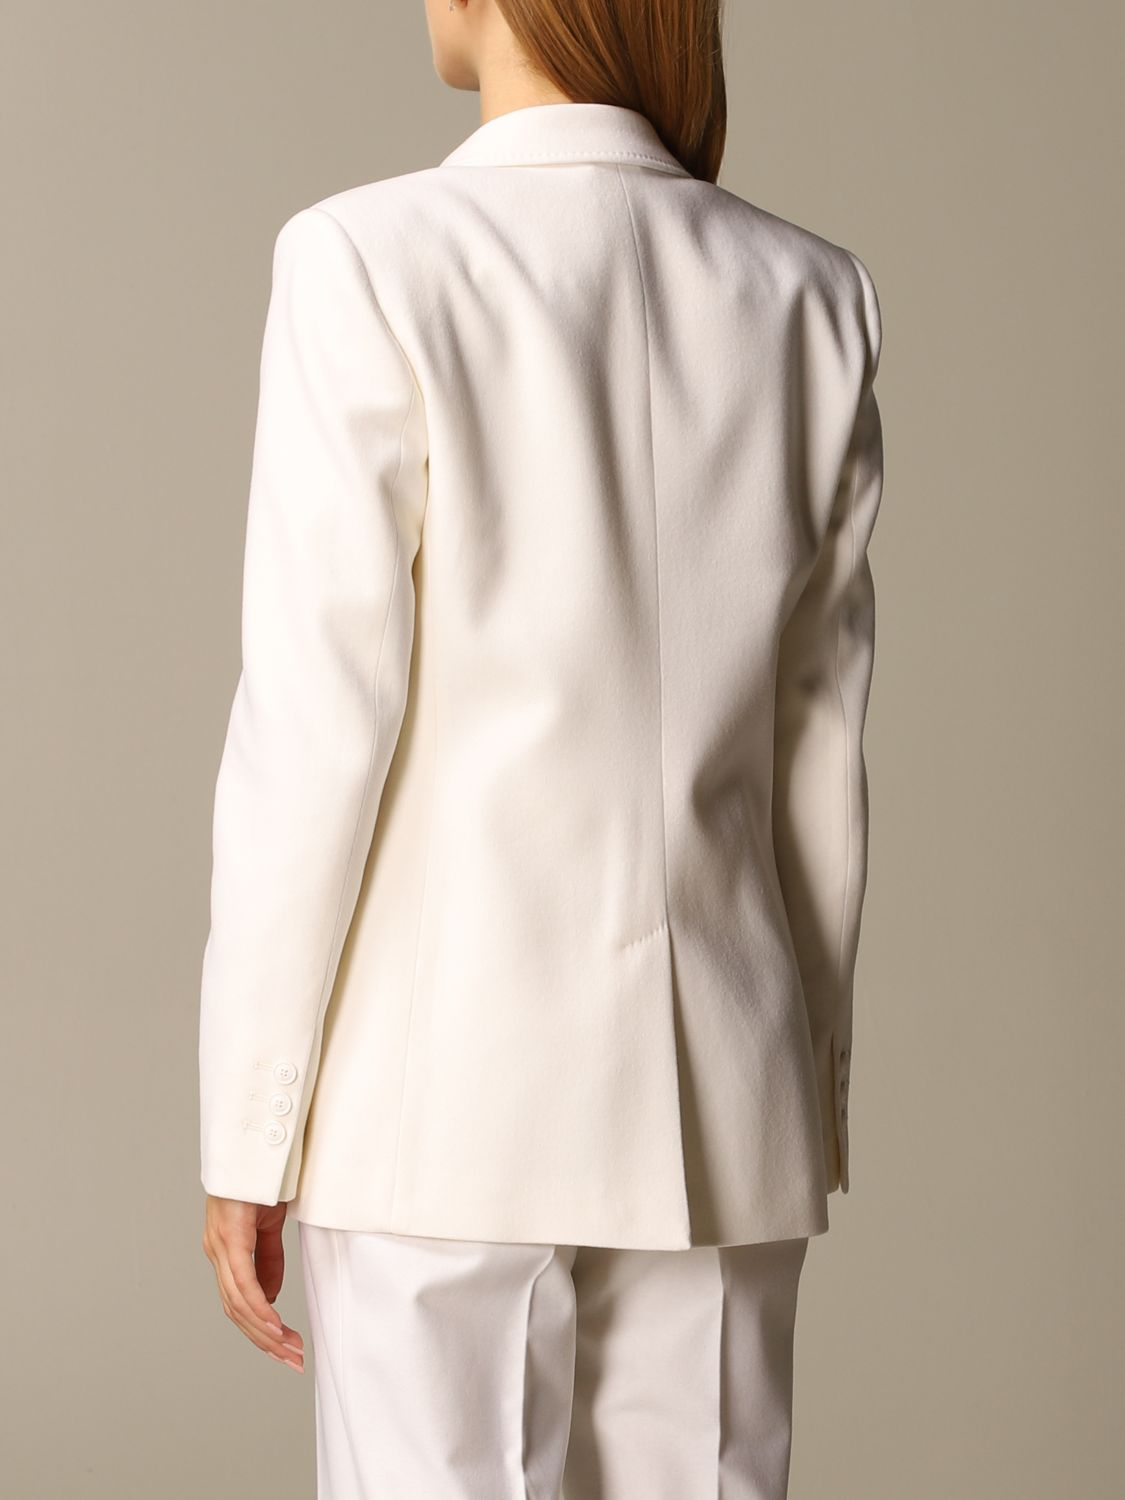 Jacket Alberta Ferretti: Jacket women Alberta Ferretti yellow cream 3